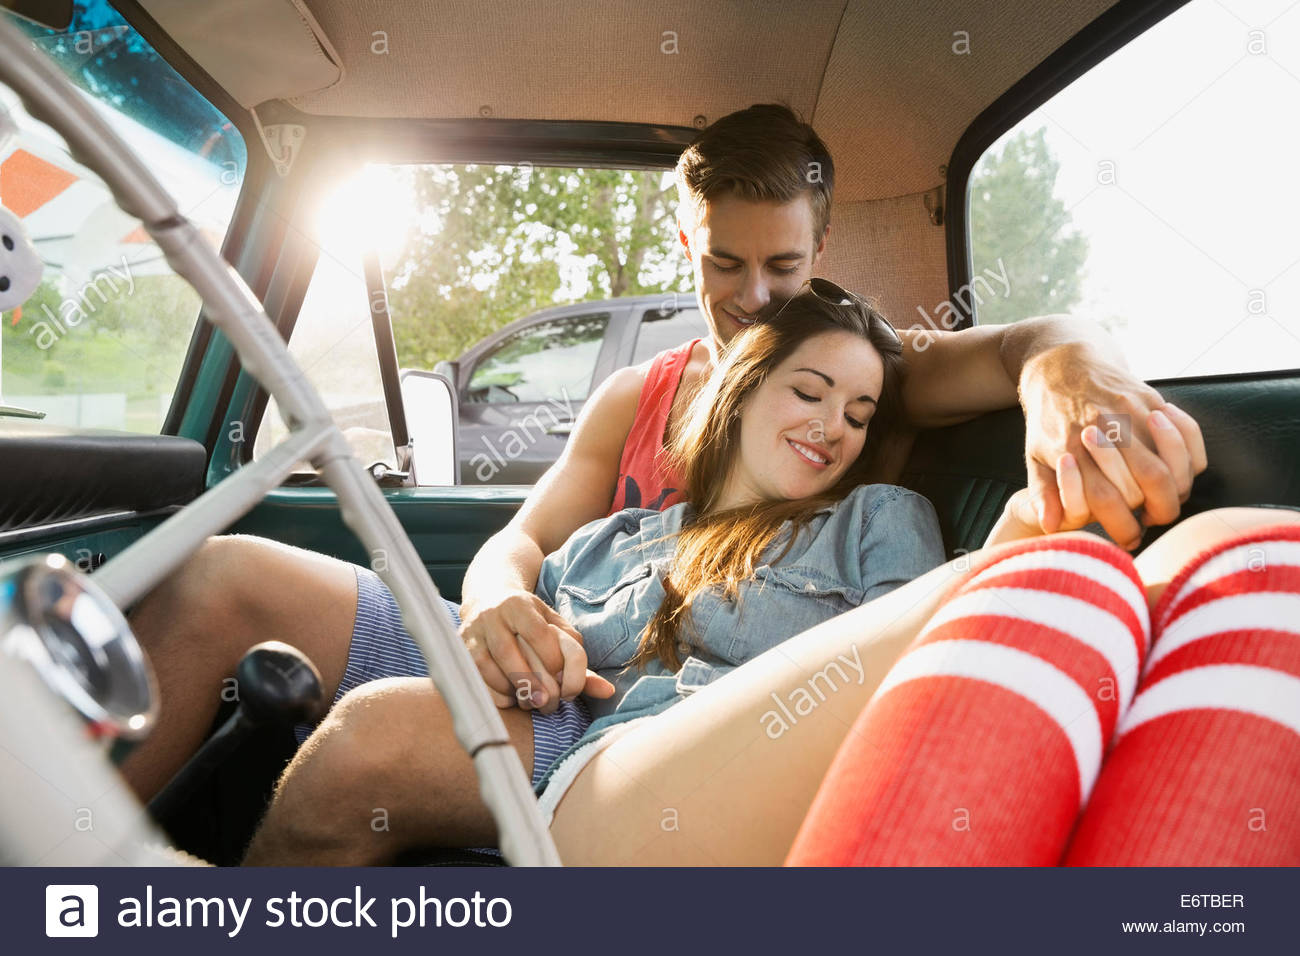 Couple relaxing together in truck - Stock Image